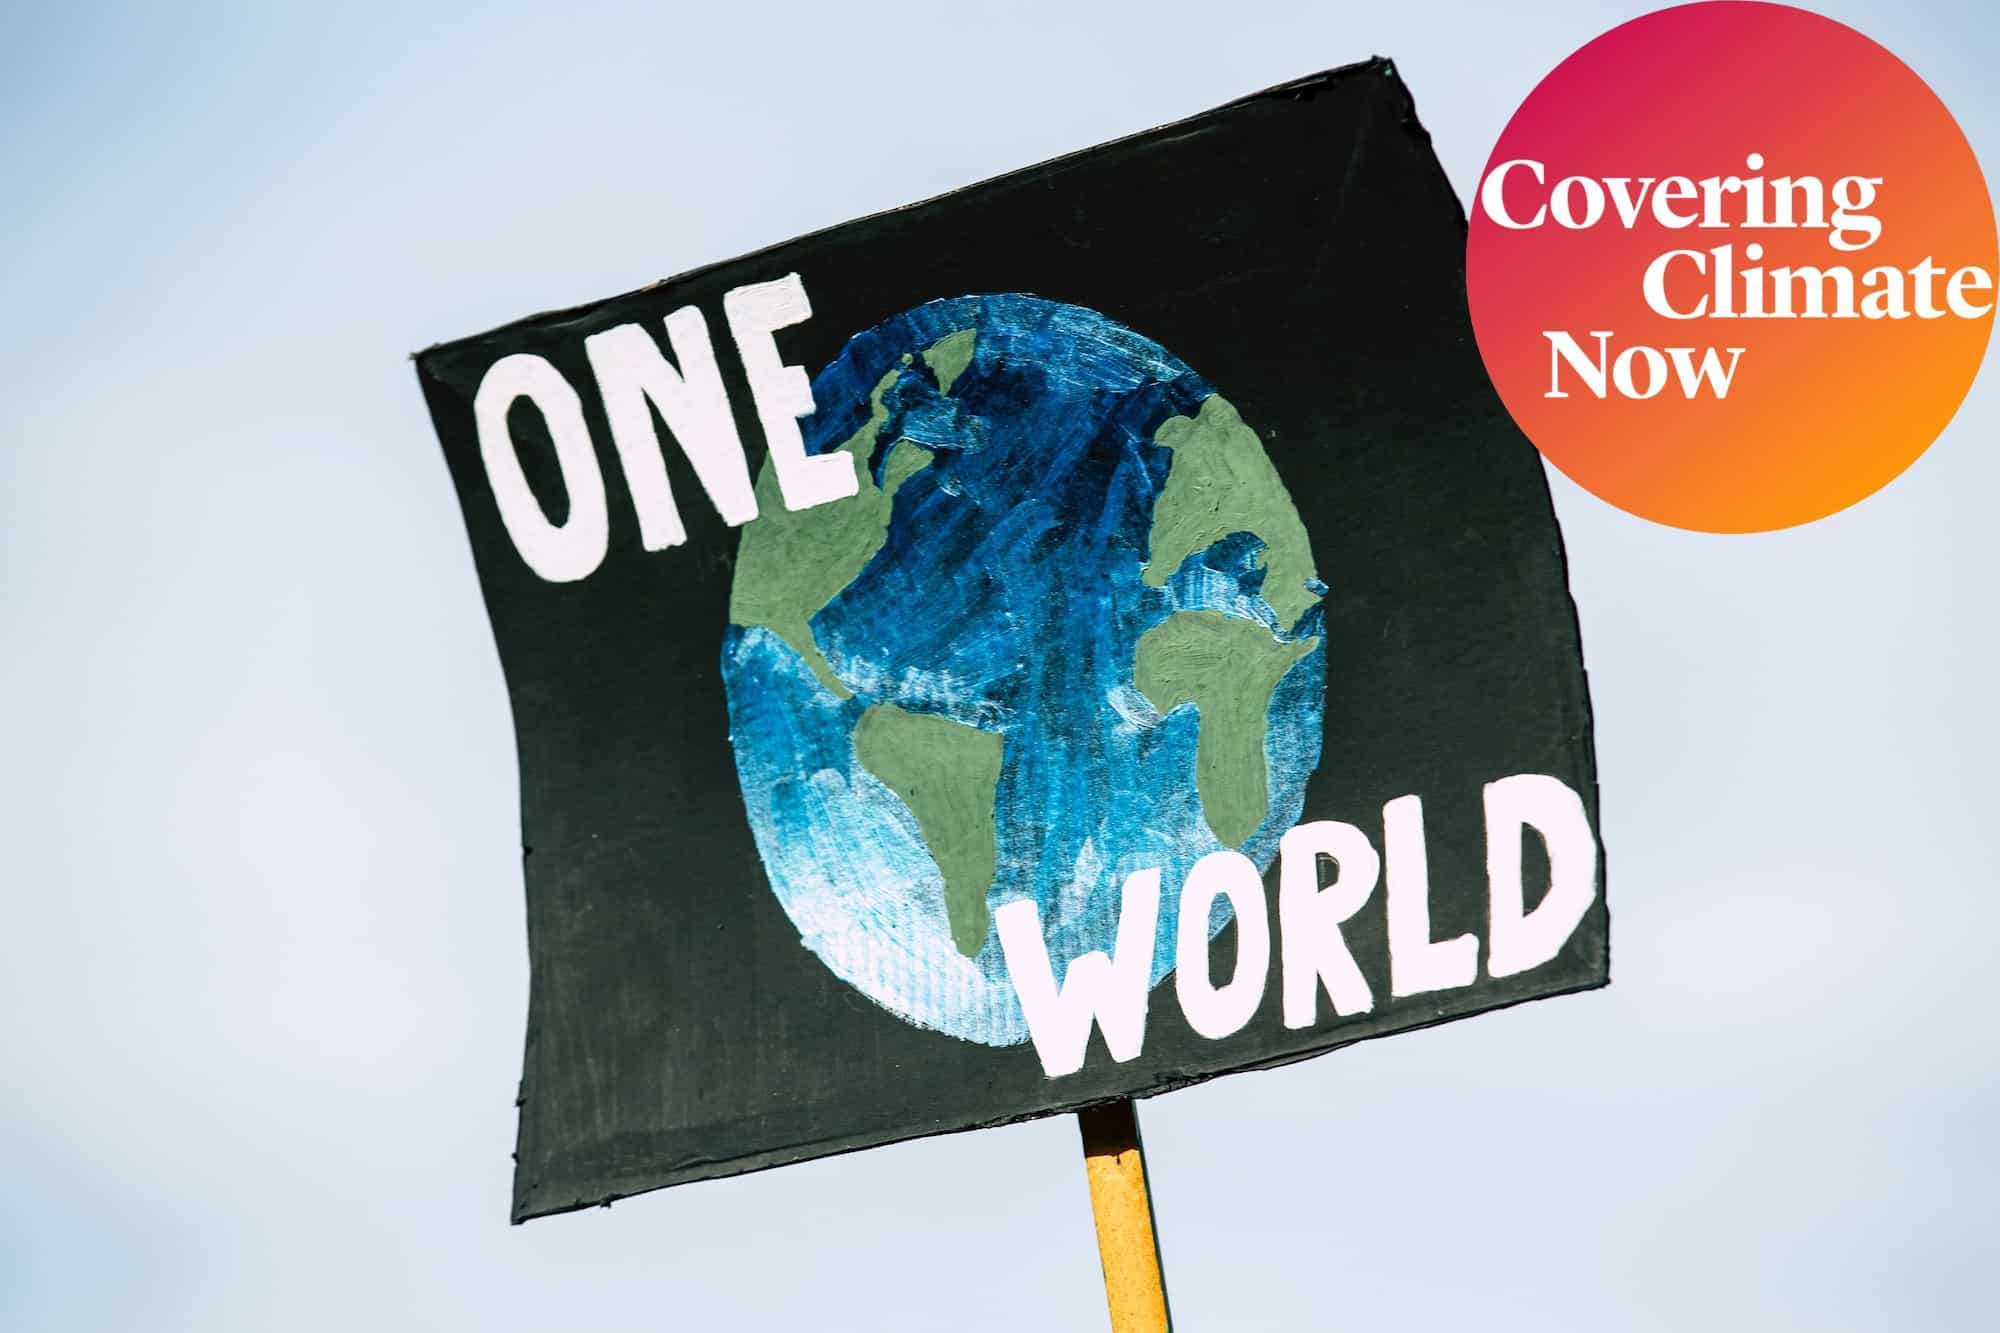 One World climate poster